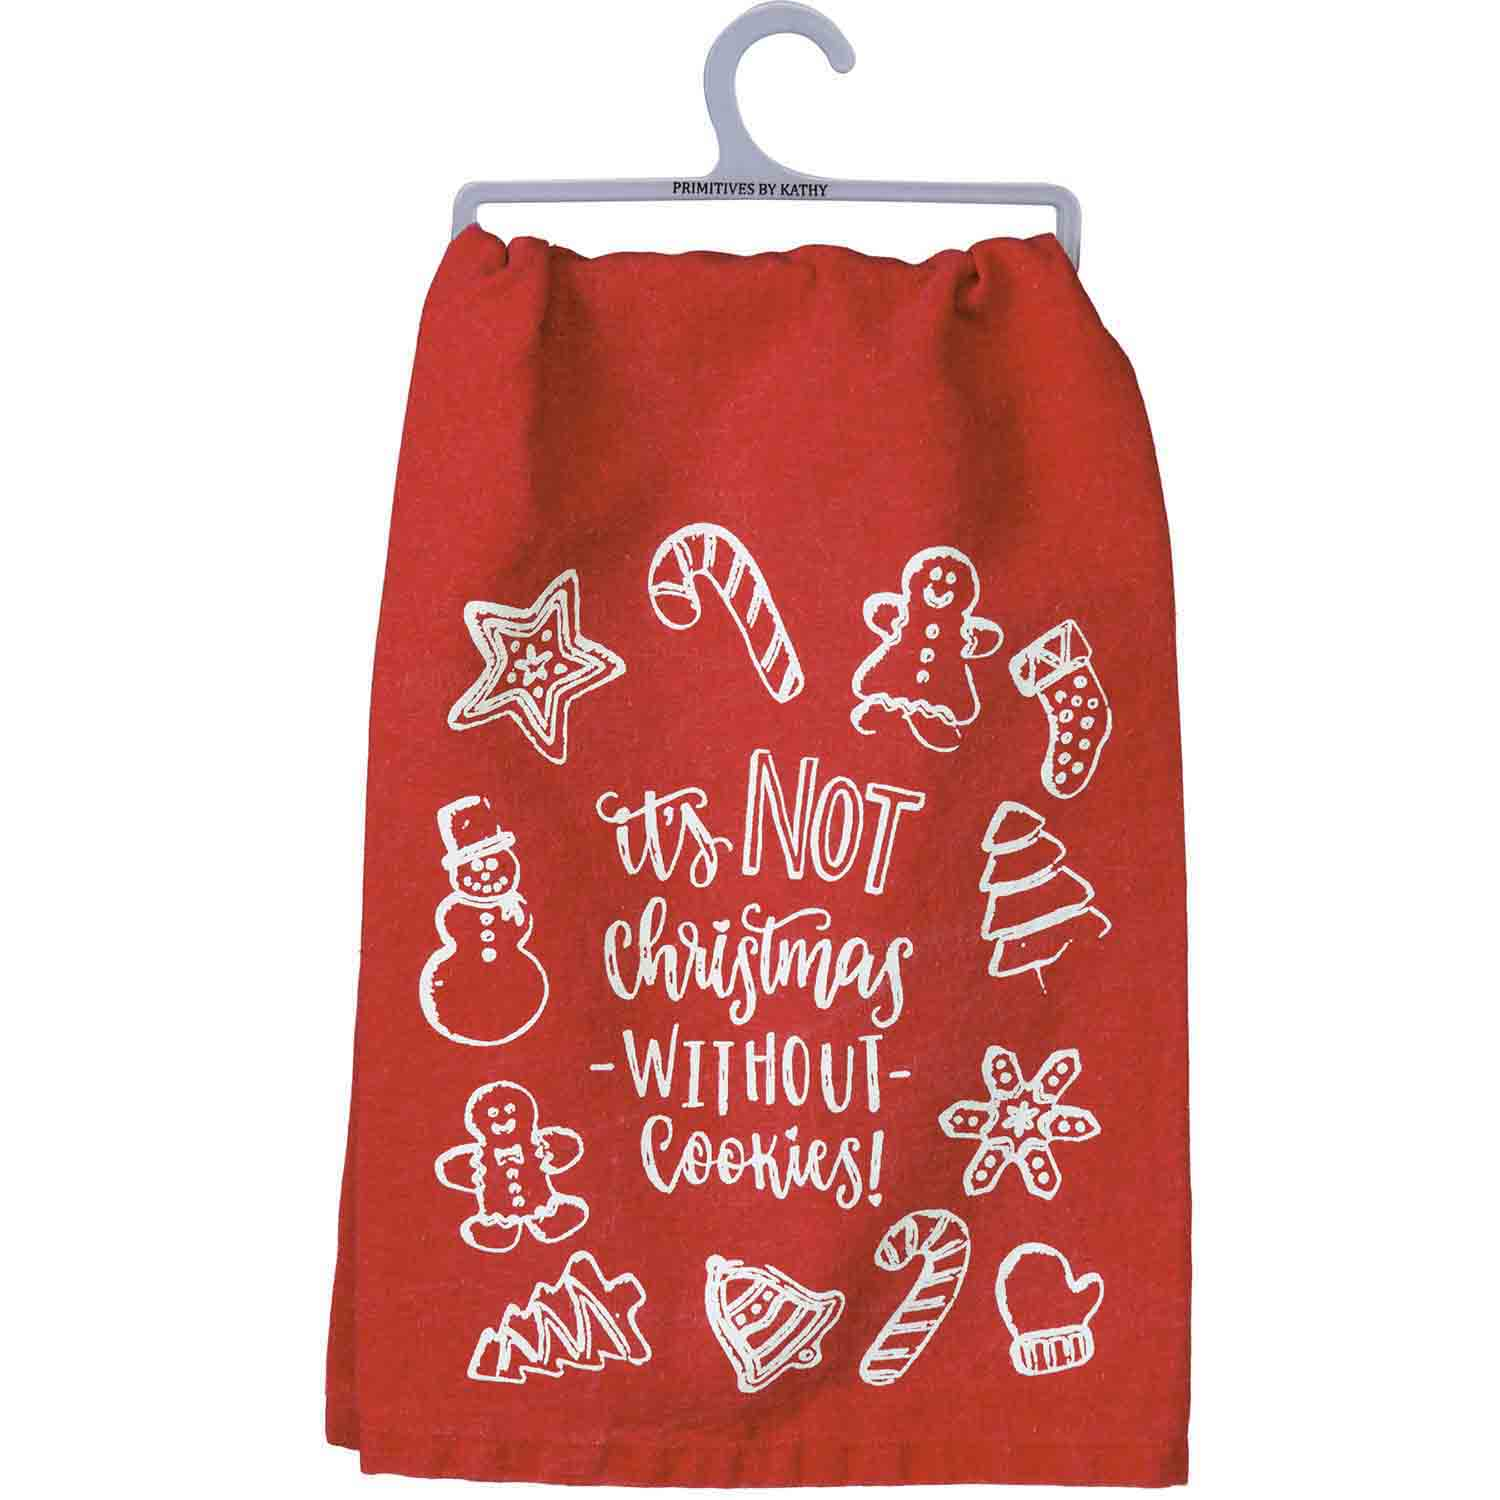 Not Christmas without Cookies Dish Towel